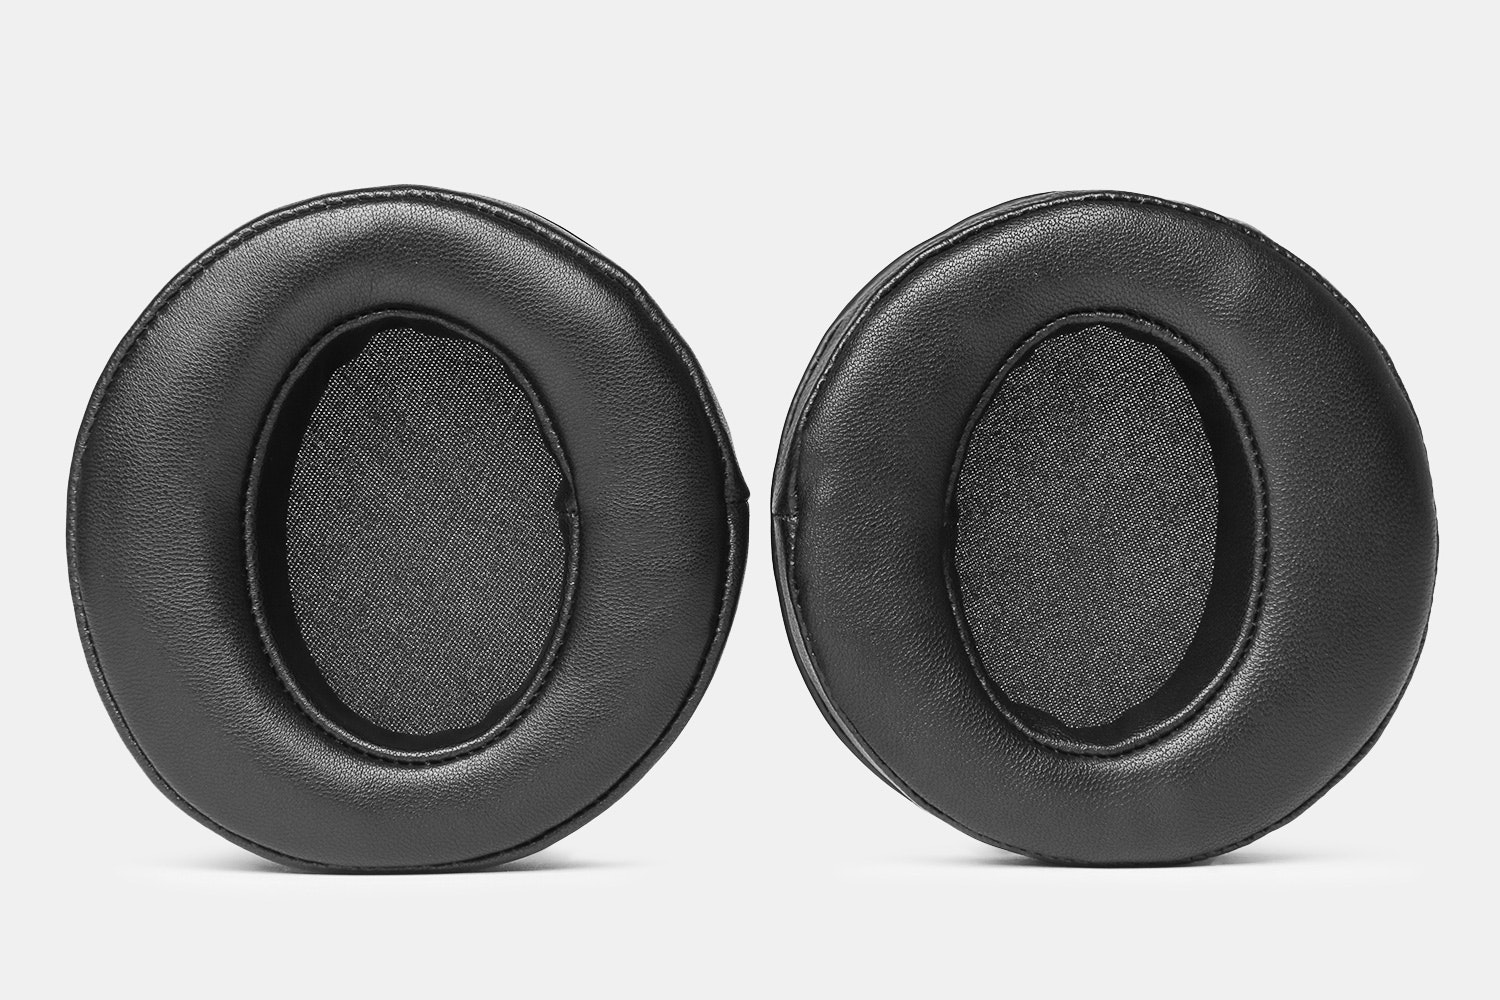 361A5887_20170629115825?w=600&h=399 zmf ear pads for fostex, audeze & more community discussions Headphone with Mic Wiring Diagram at reclaimingppi.co